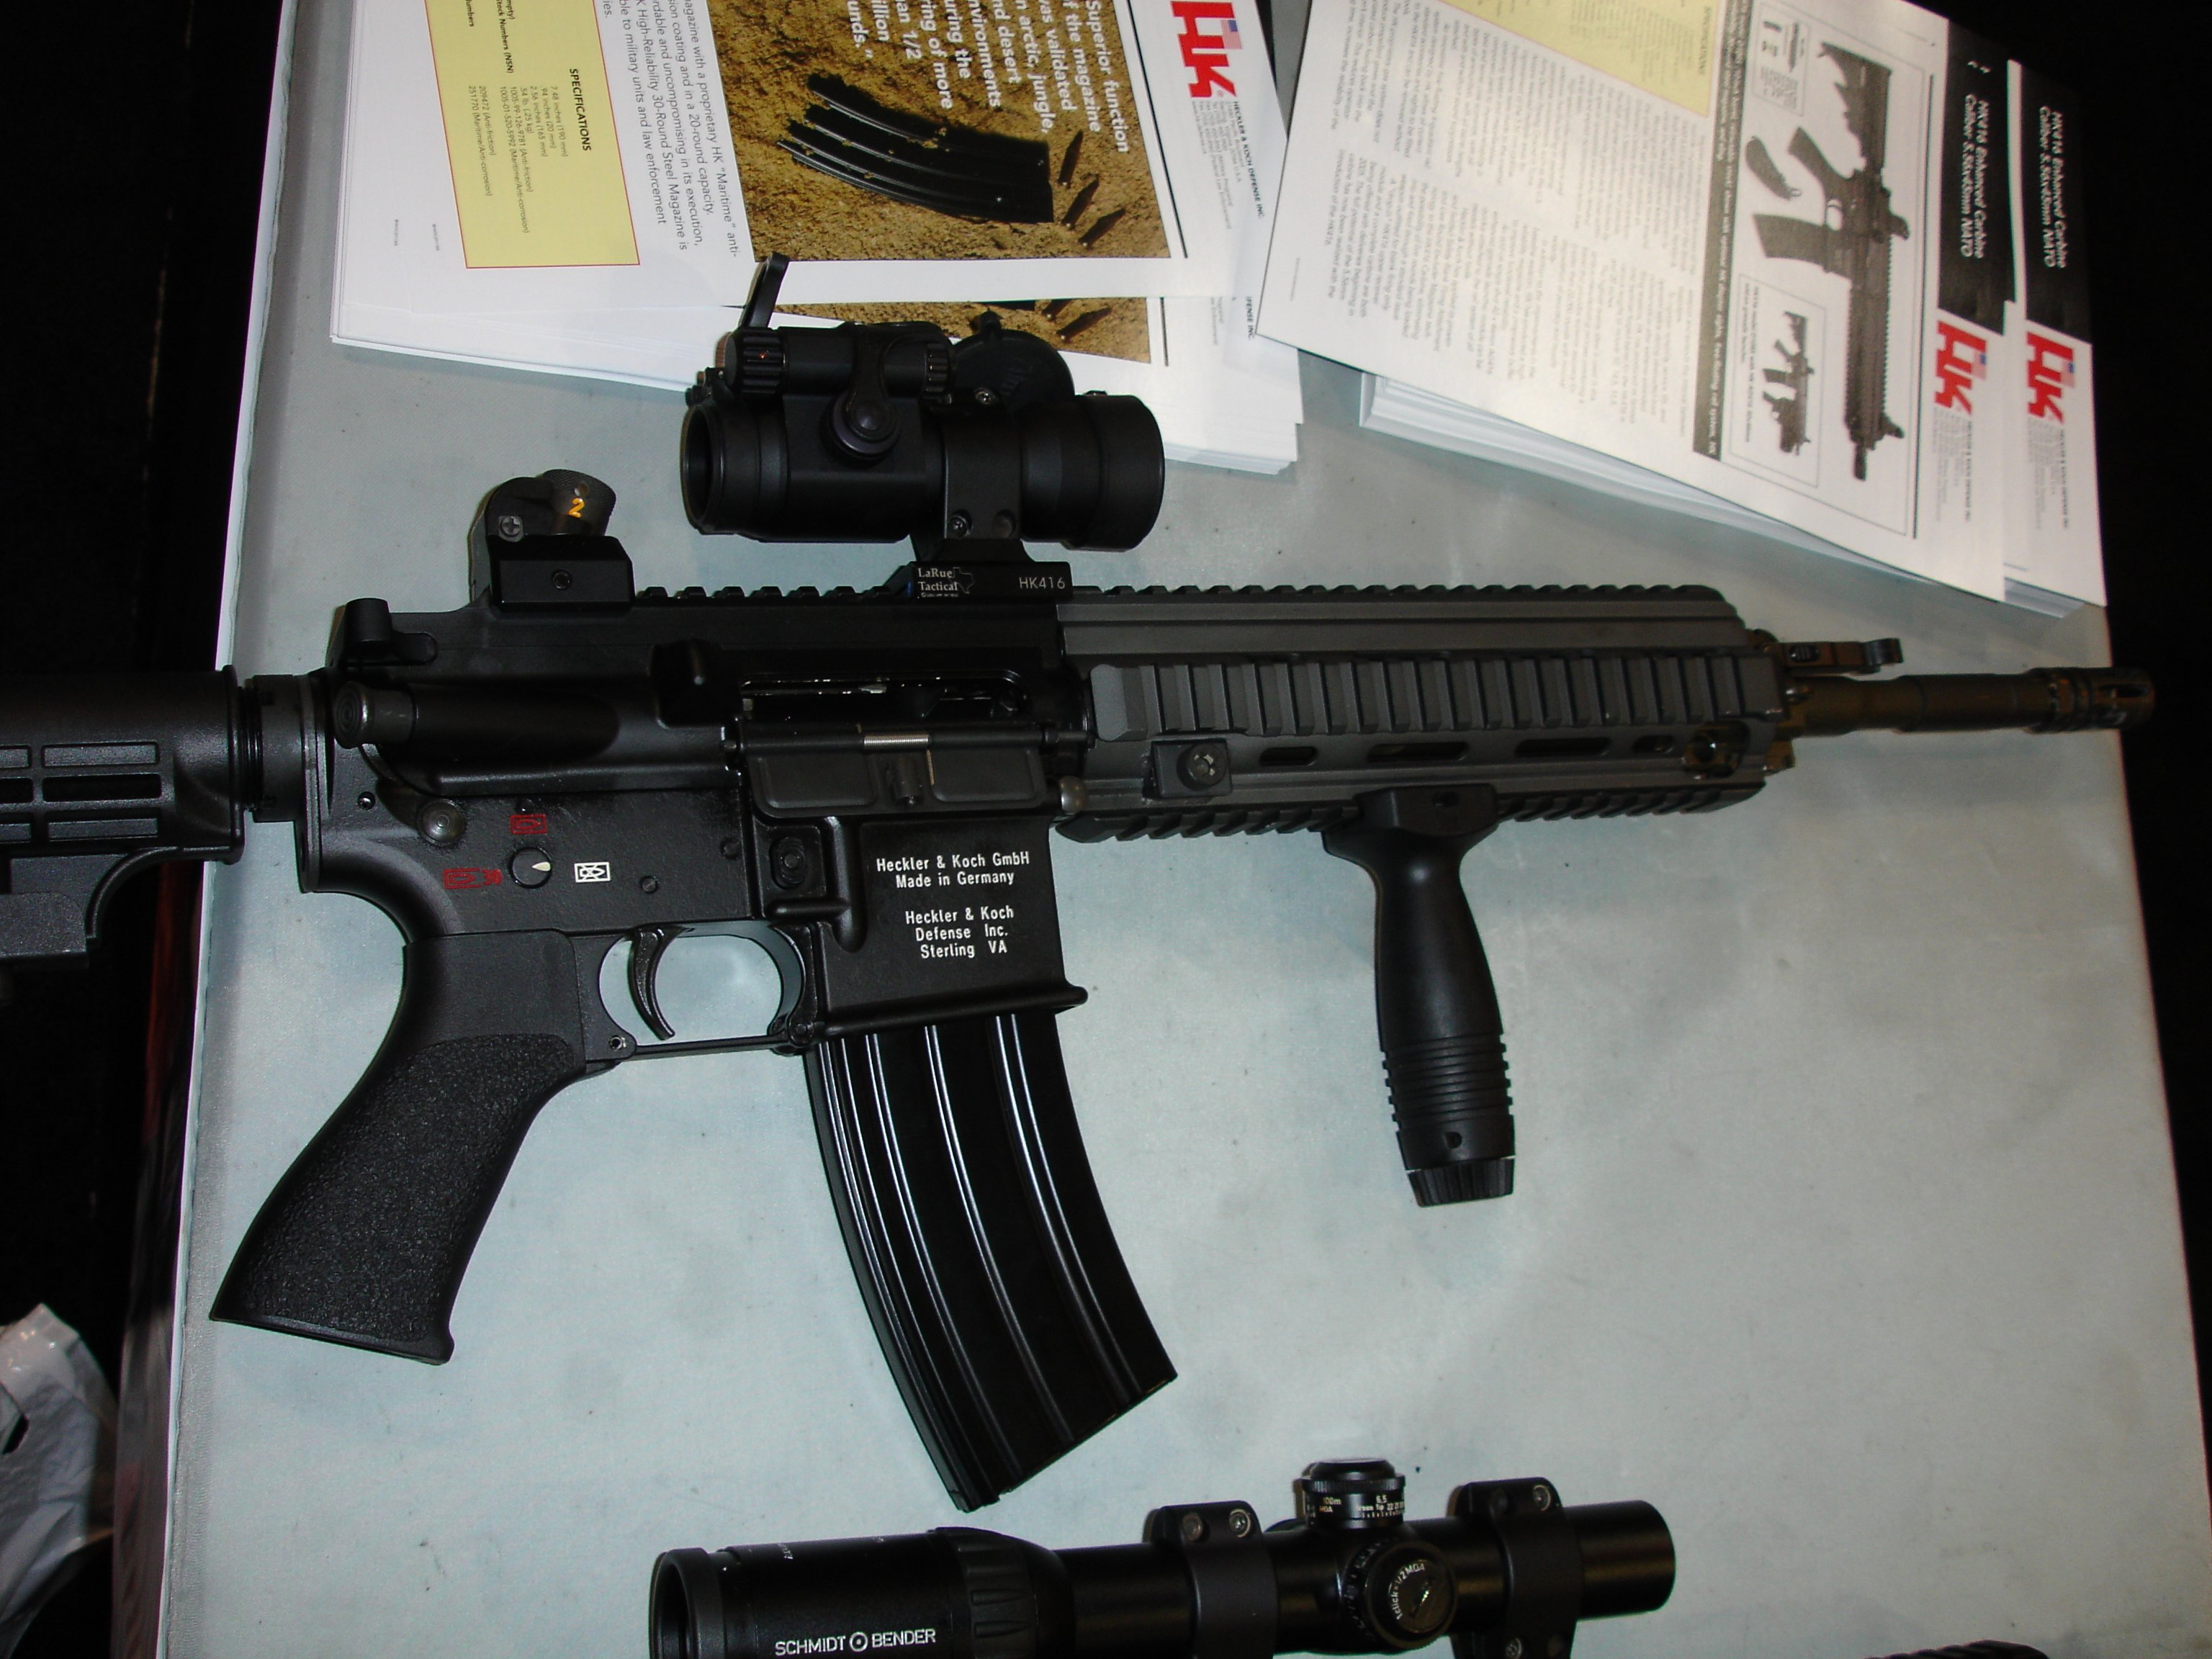 HK416 1 <!  :en  >HK416 Carbine/SBR Confiscation Program Unleashed on U.S. Army AWG<!  :  >